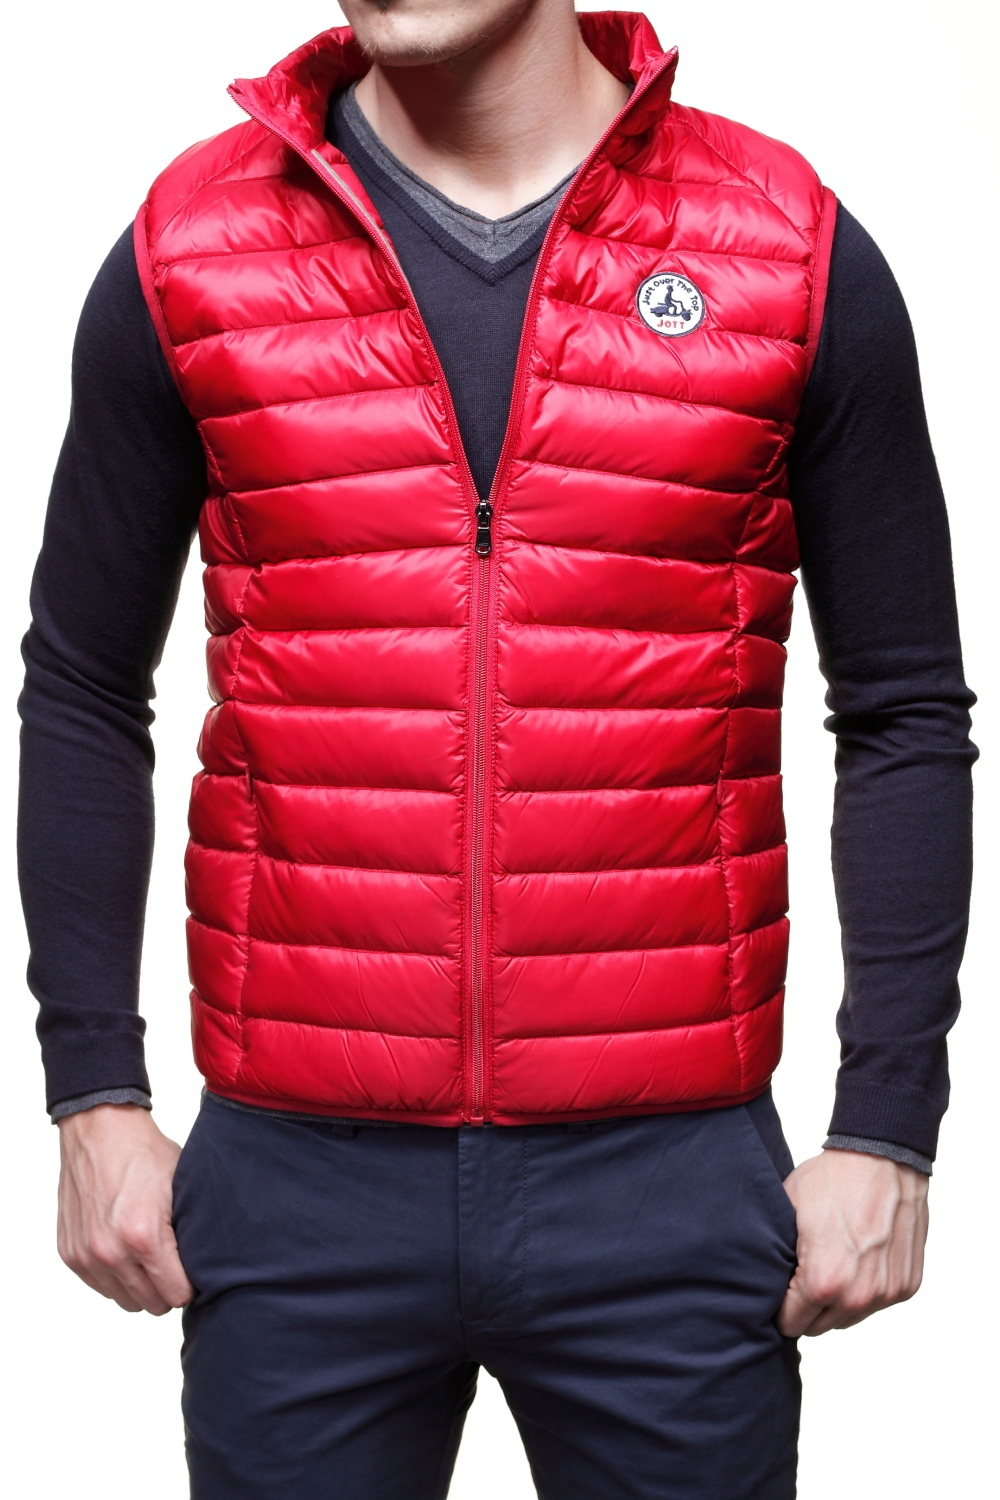 http://www.leadermode.com/62963/jott-just-over-the-top-tom-gilet-red.jpg